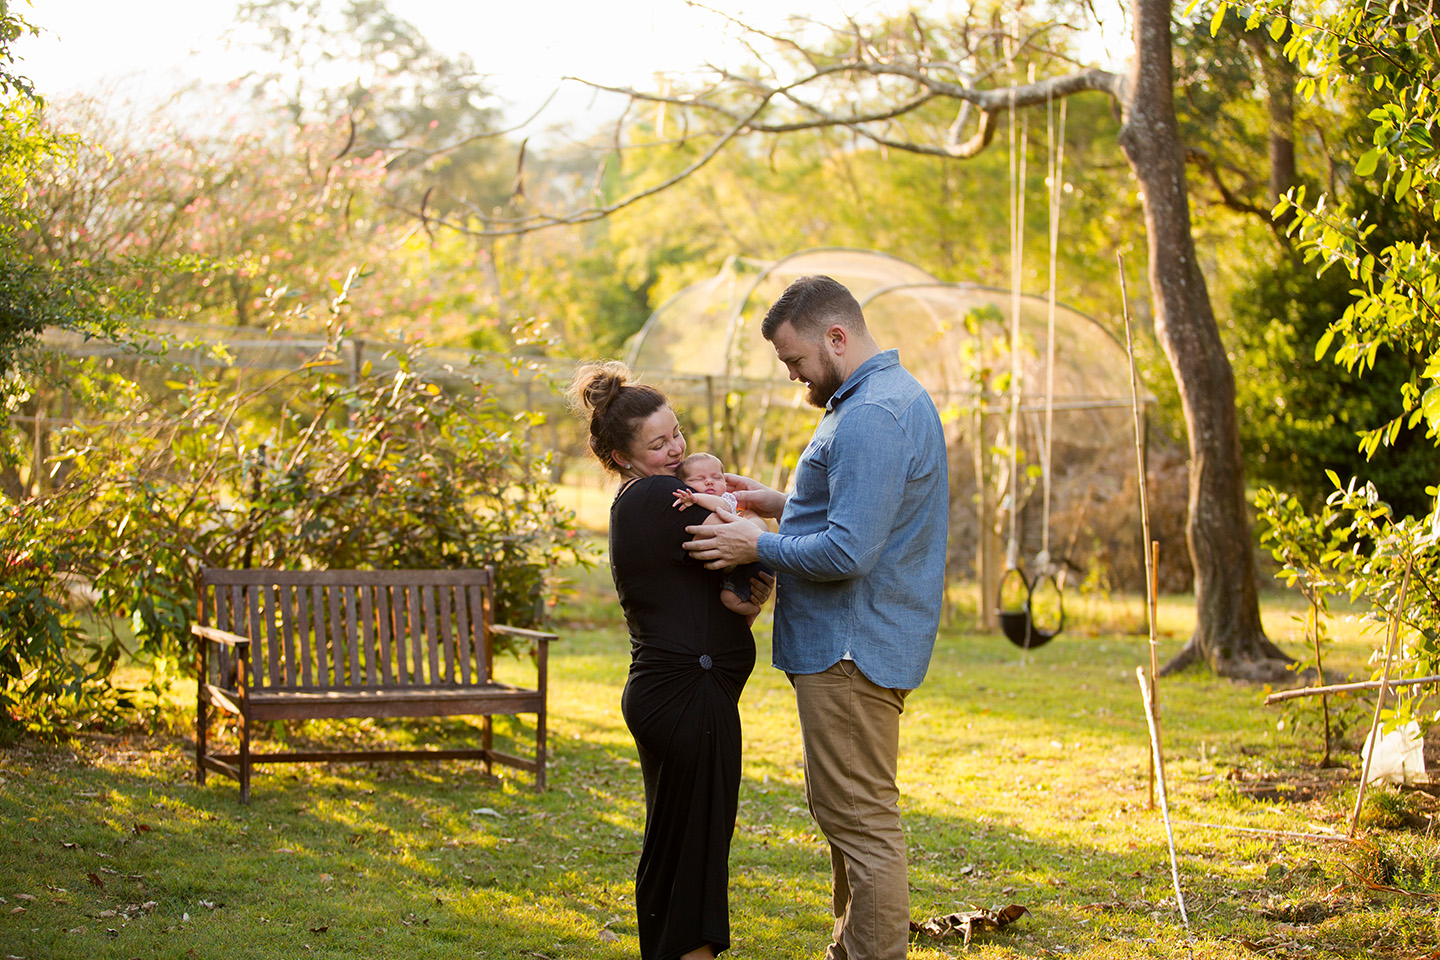 Newborn, parents, family, afternoon light, home, Alice payne photography